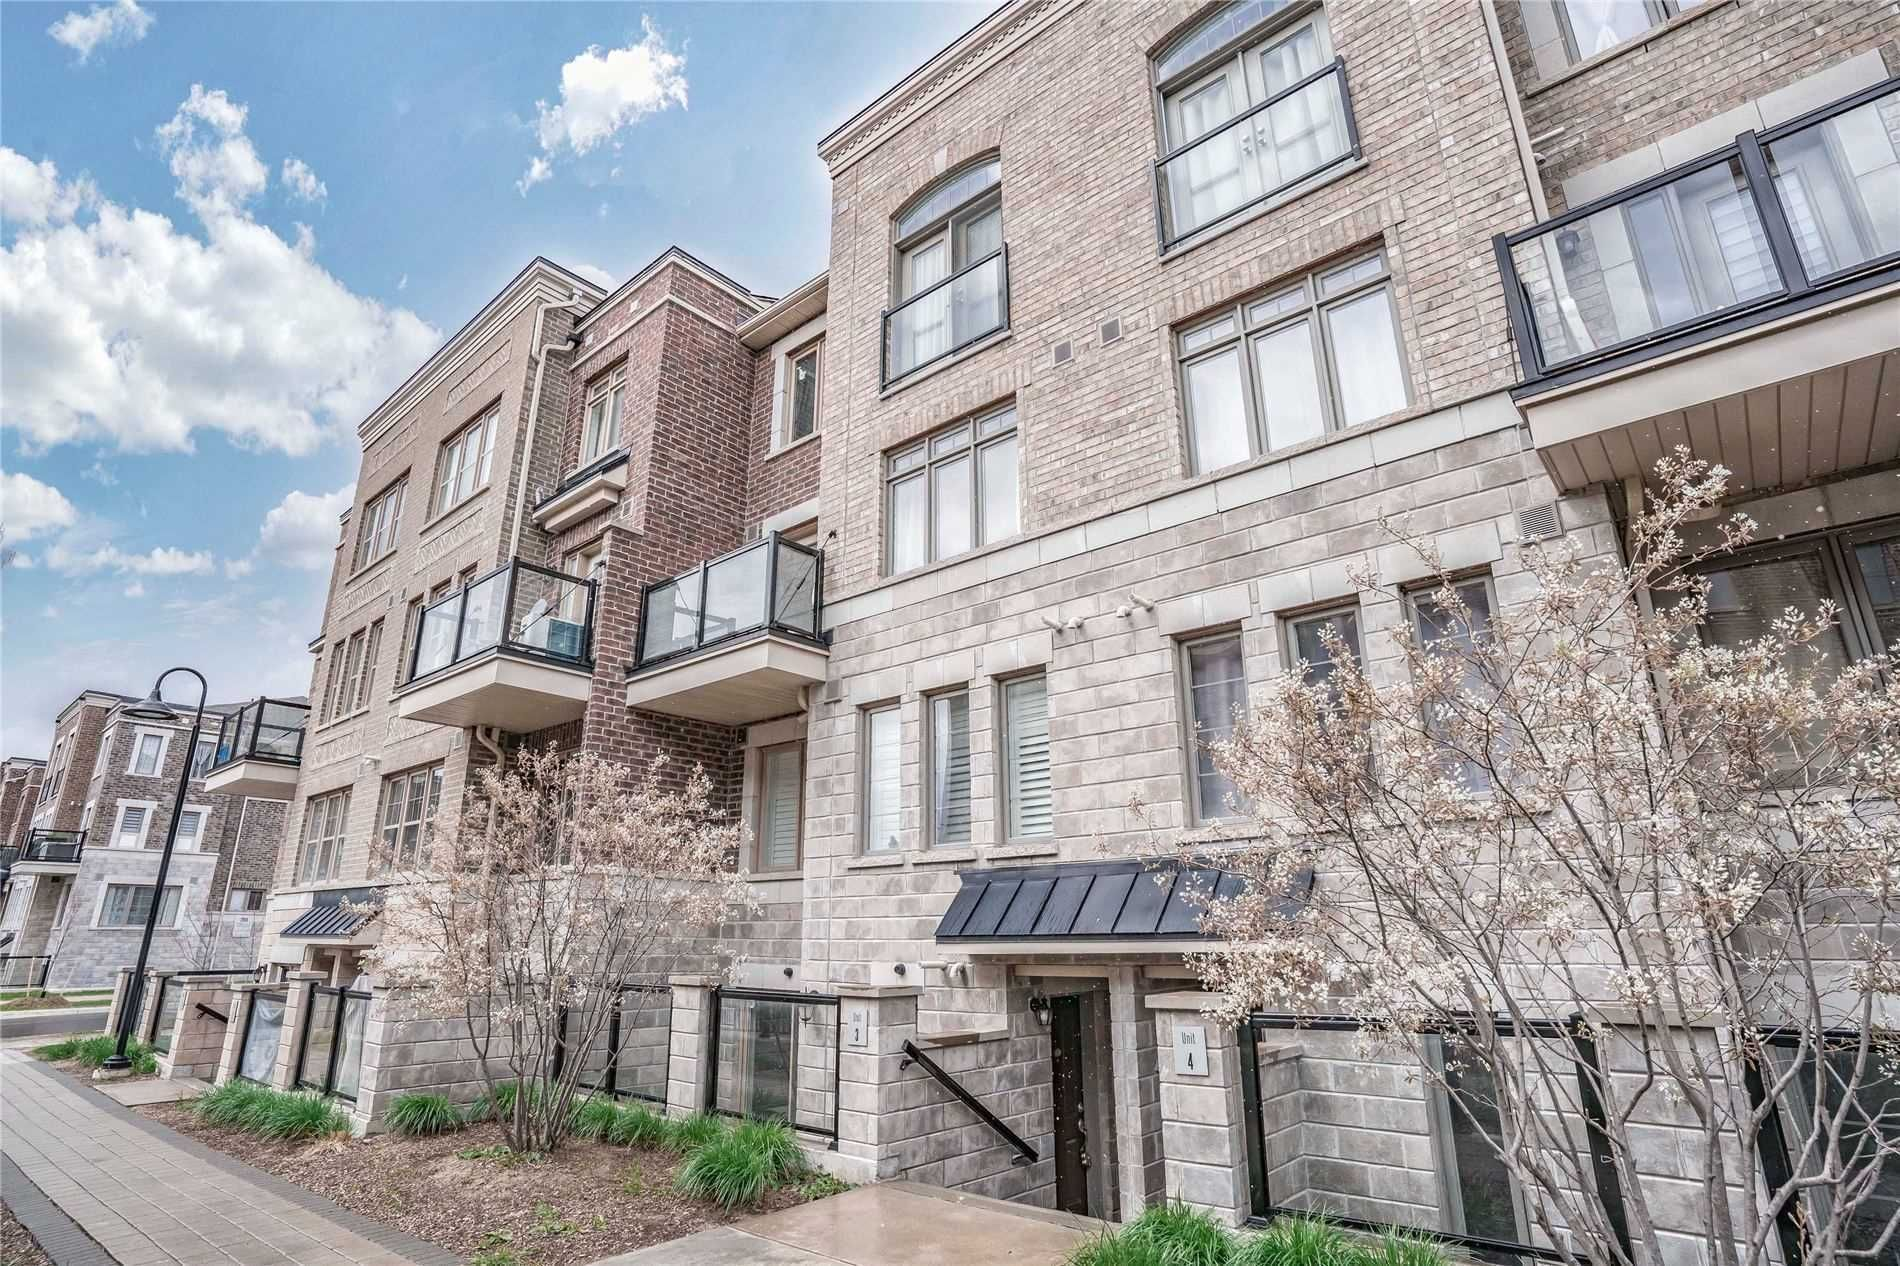 2335 Sheppard Ave W, unit 3 for sale in Toronto - image #1